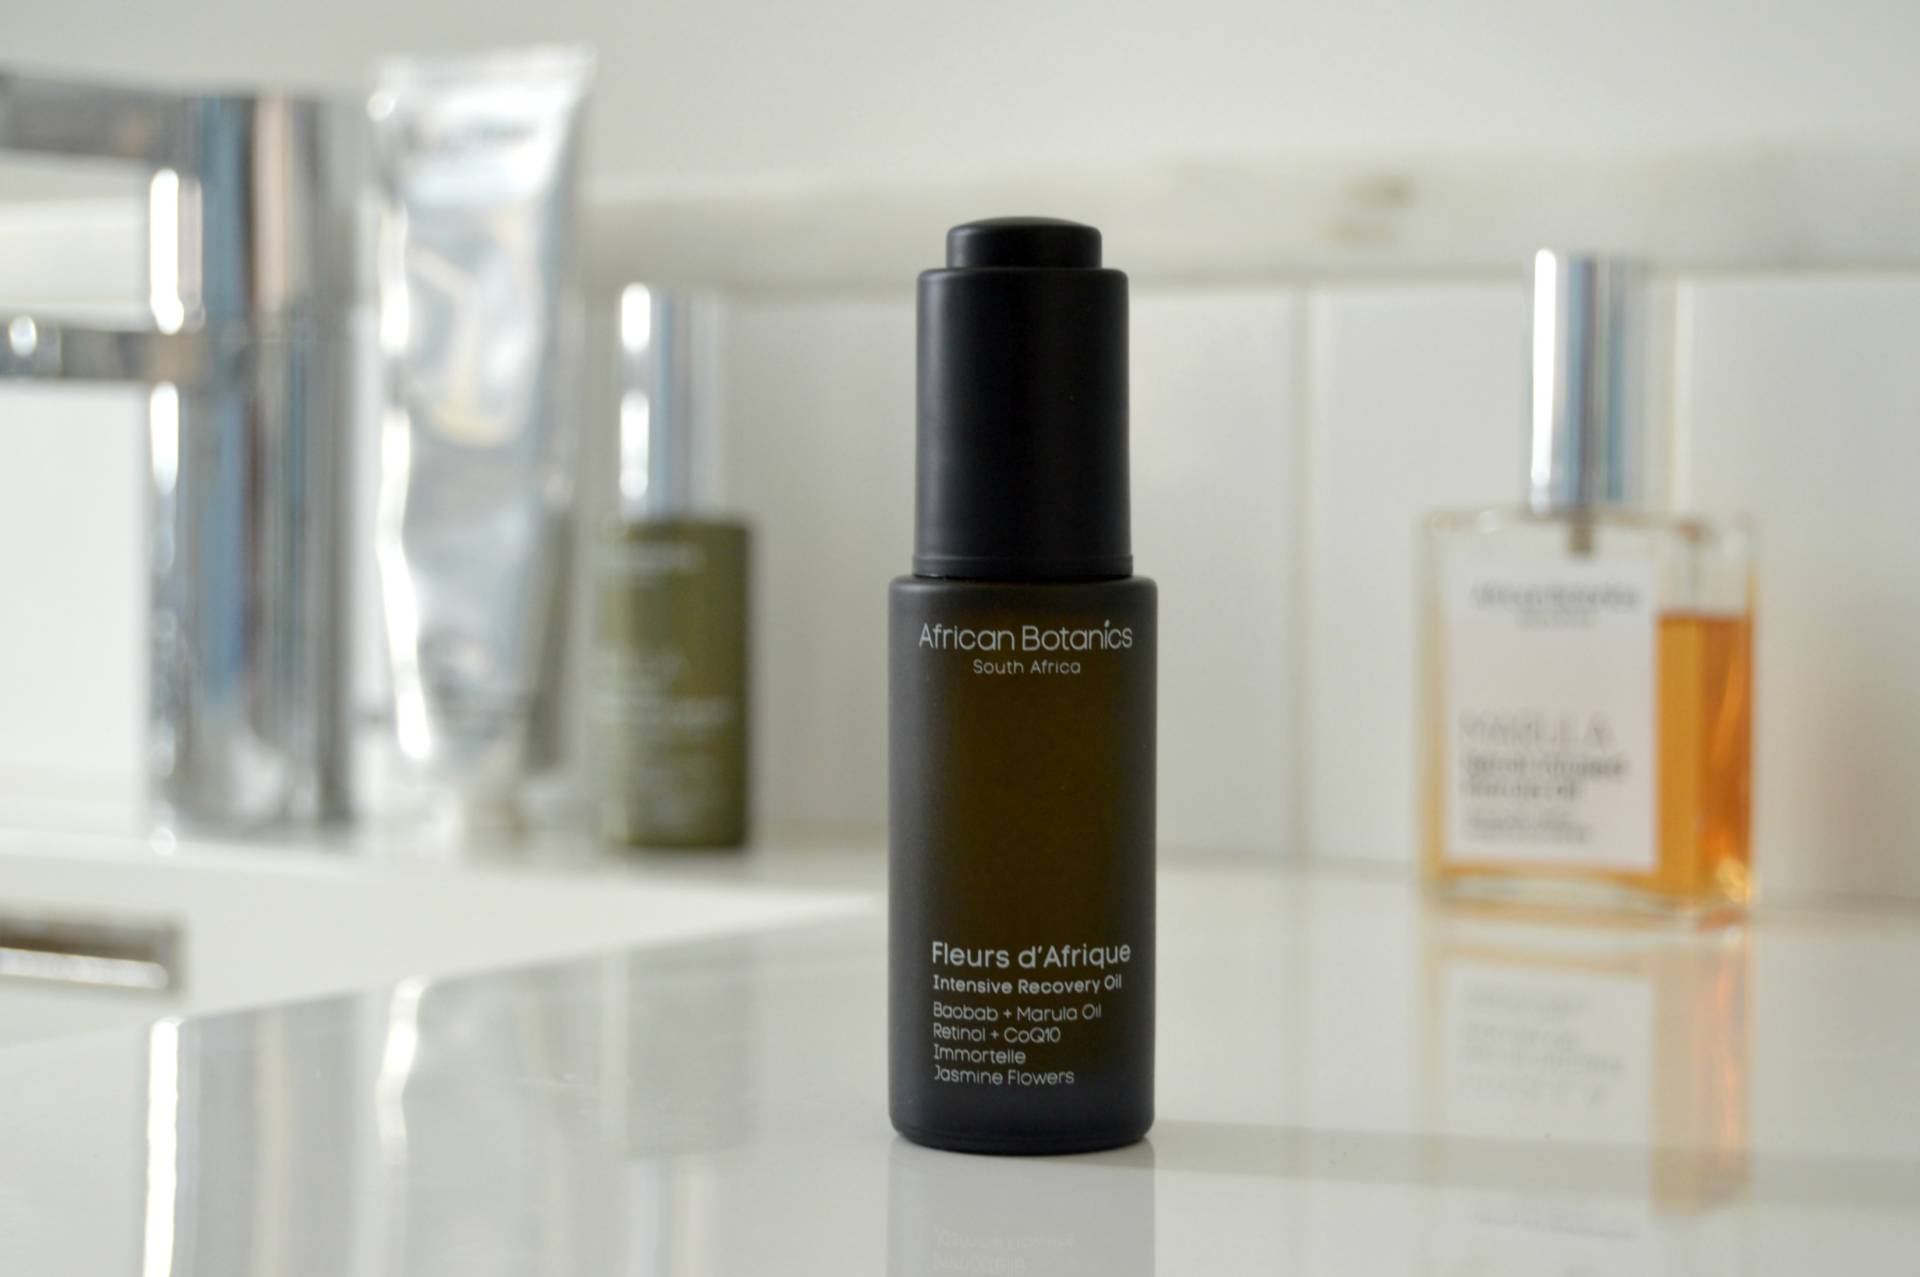 african botanics fleur d afrique recovery oil review inhautepursuit green luxury